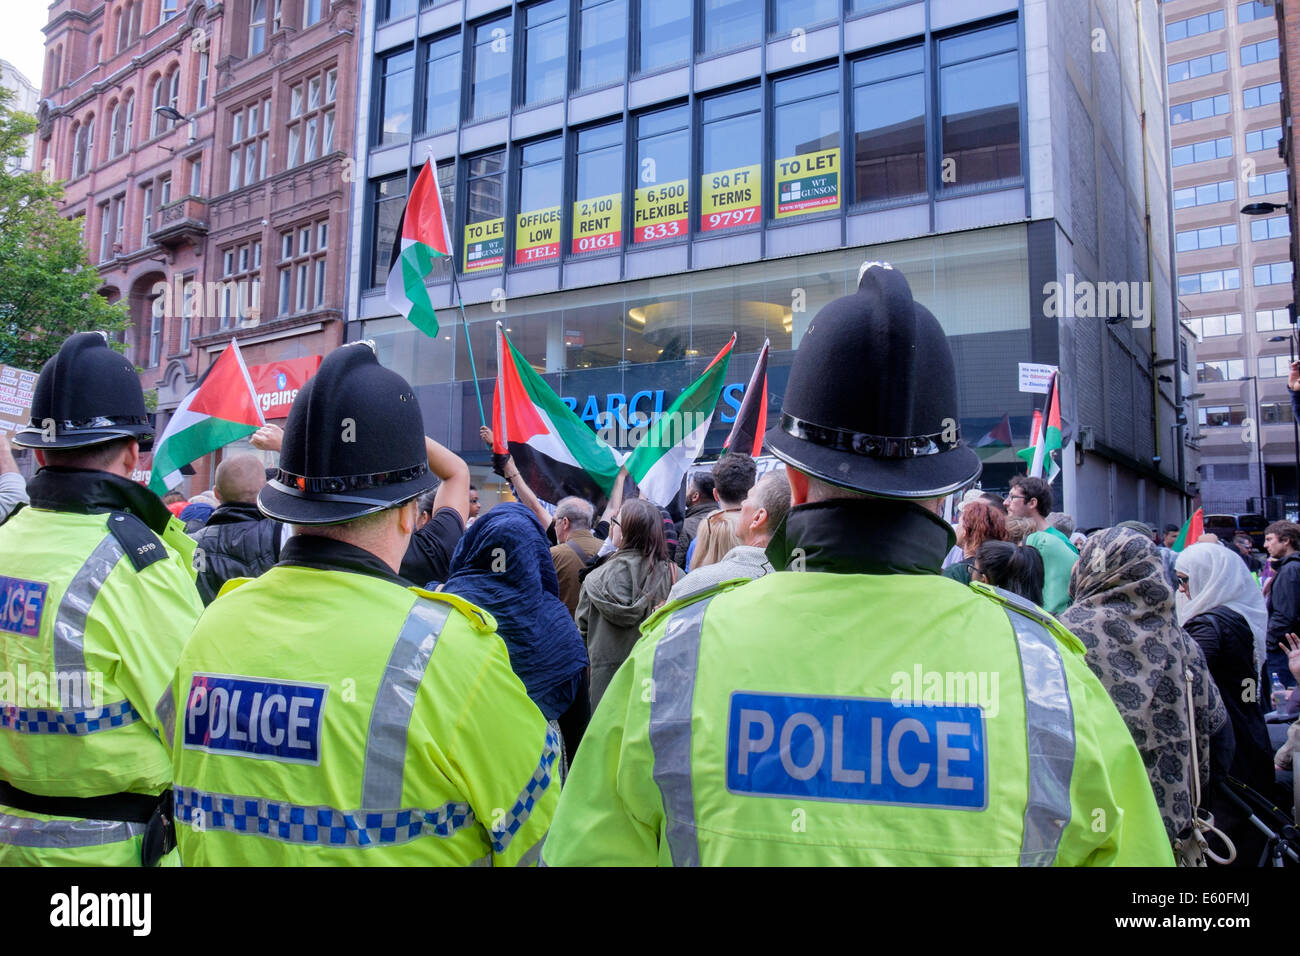 Manchester, UK. 9th August 2014. Police surround and observe the hundreds of demonstrators protesting outside Barclays - Stock Image